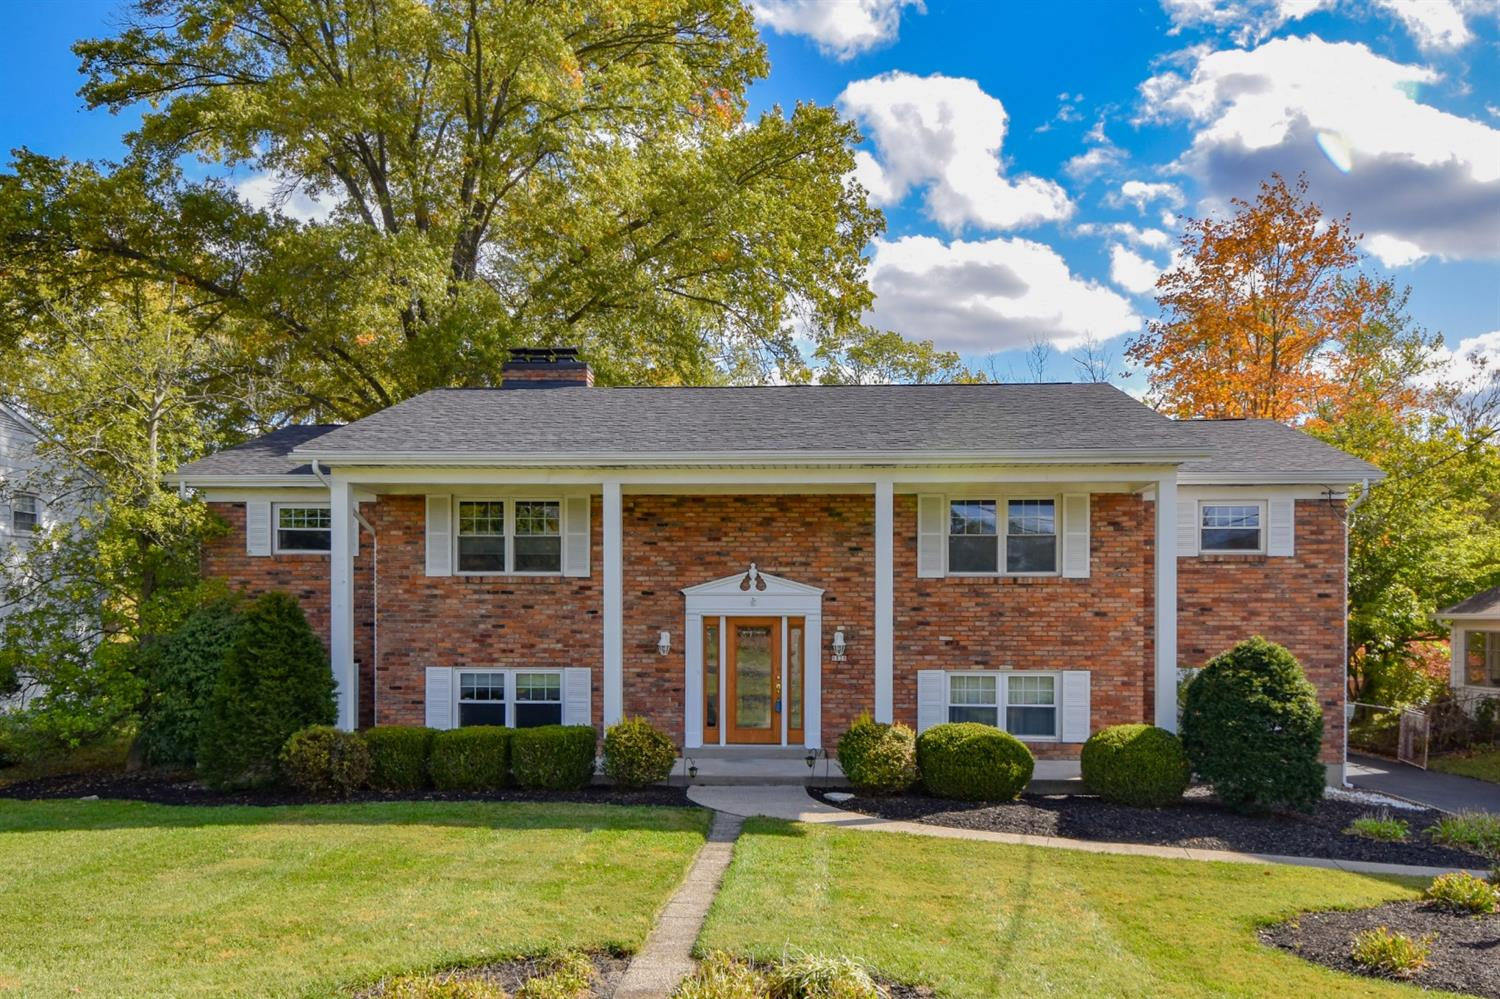 8838 Kenwood Rd Sycamore Twp., OH